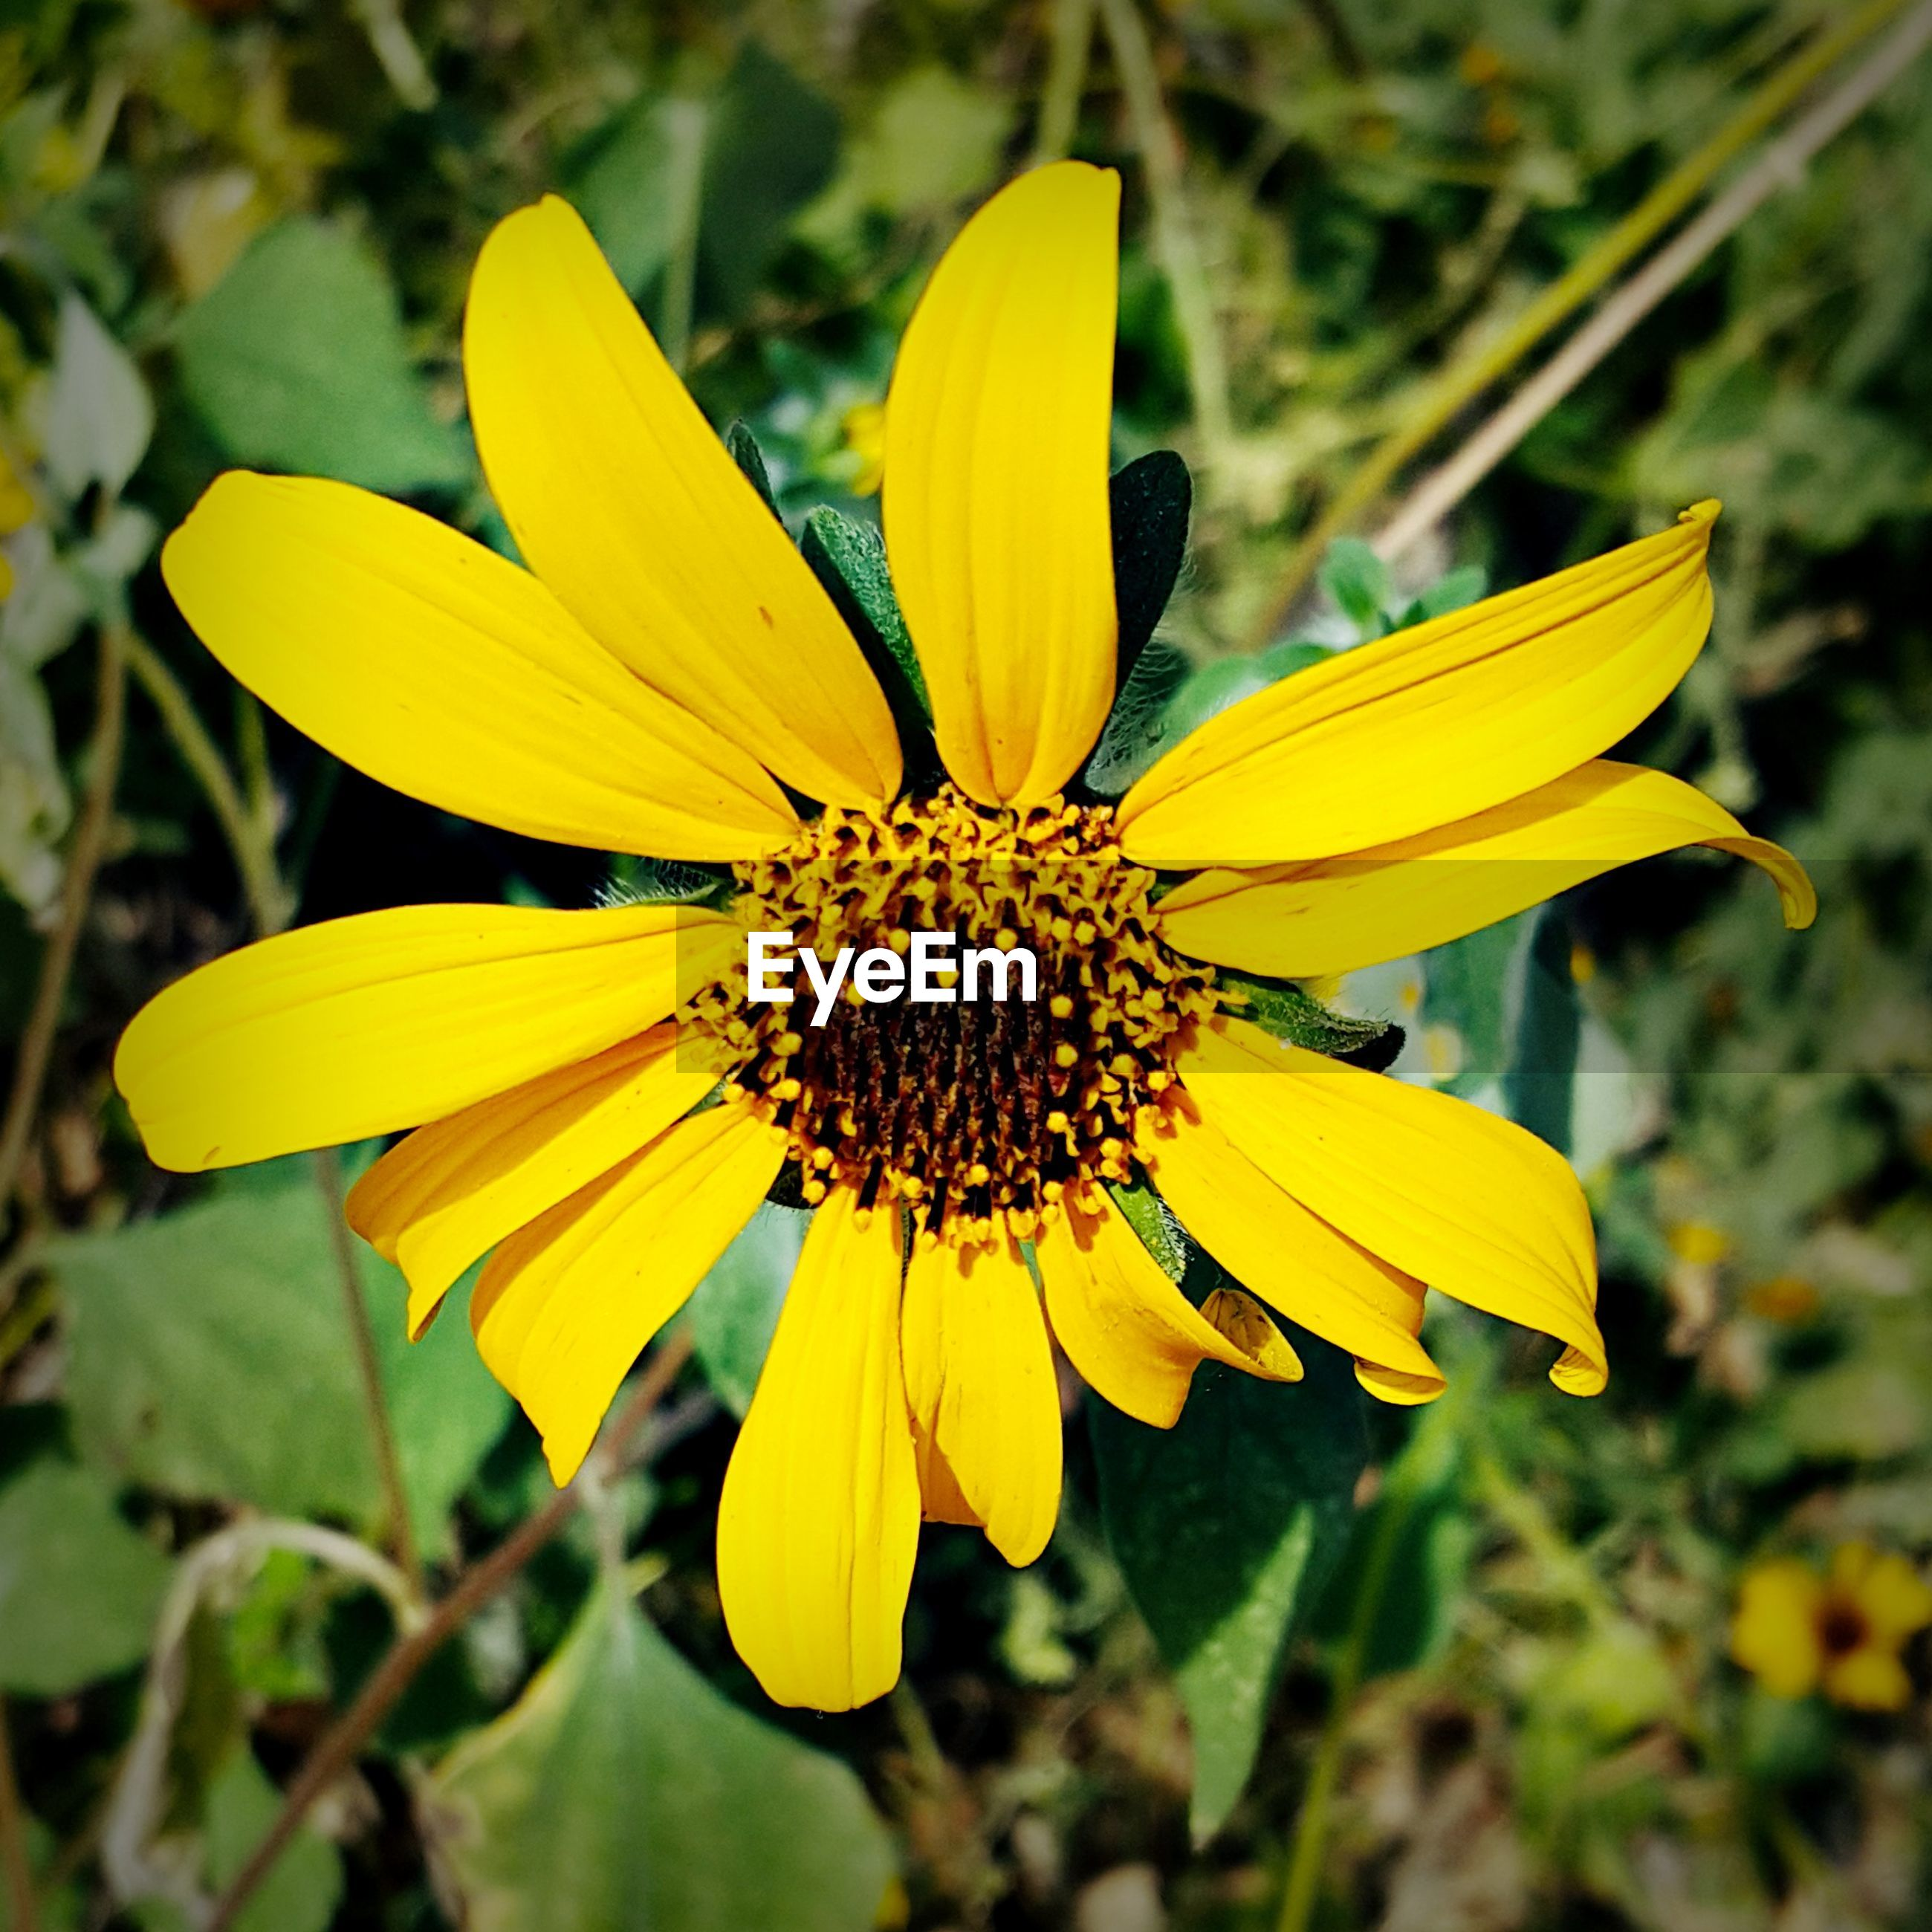 CLOSE-UP OF YELLOW FLOWER BLOOMING IN GARDEN